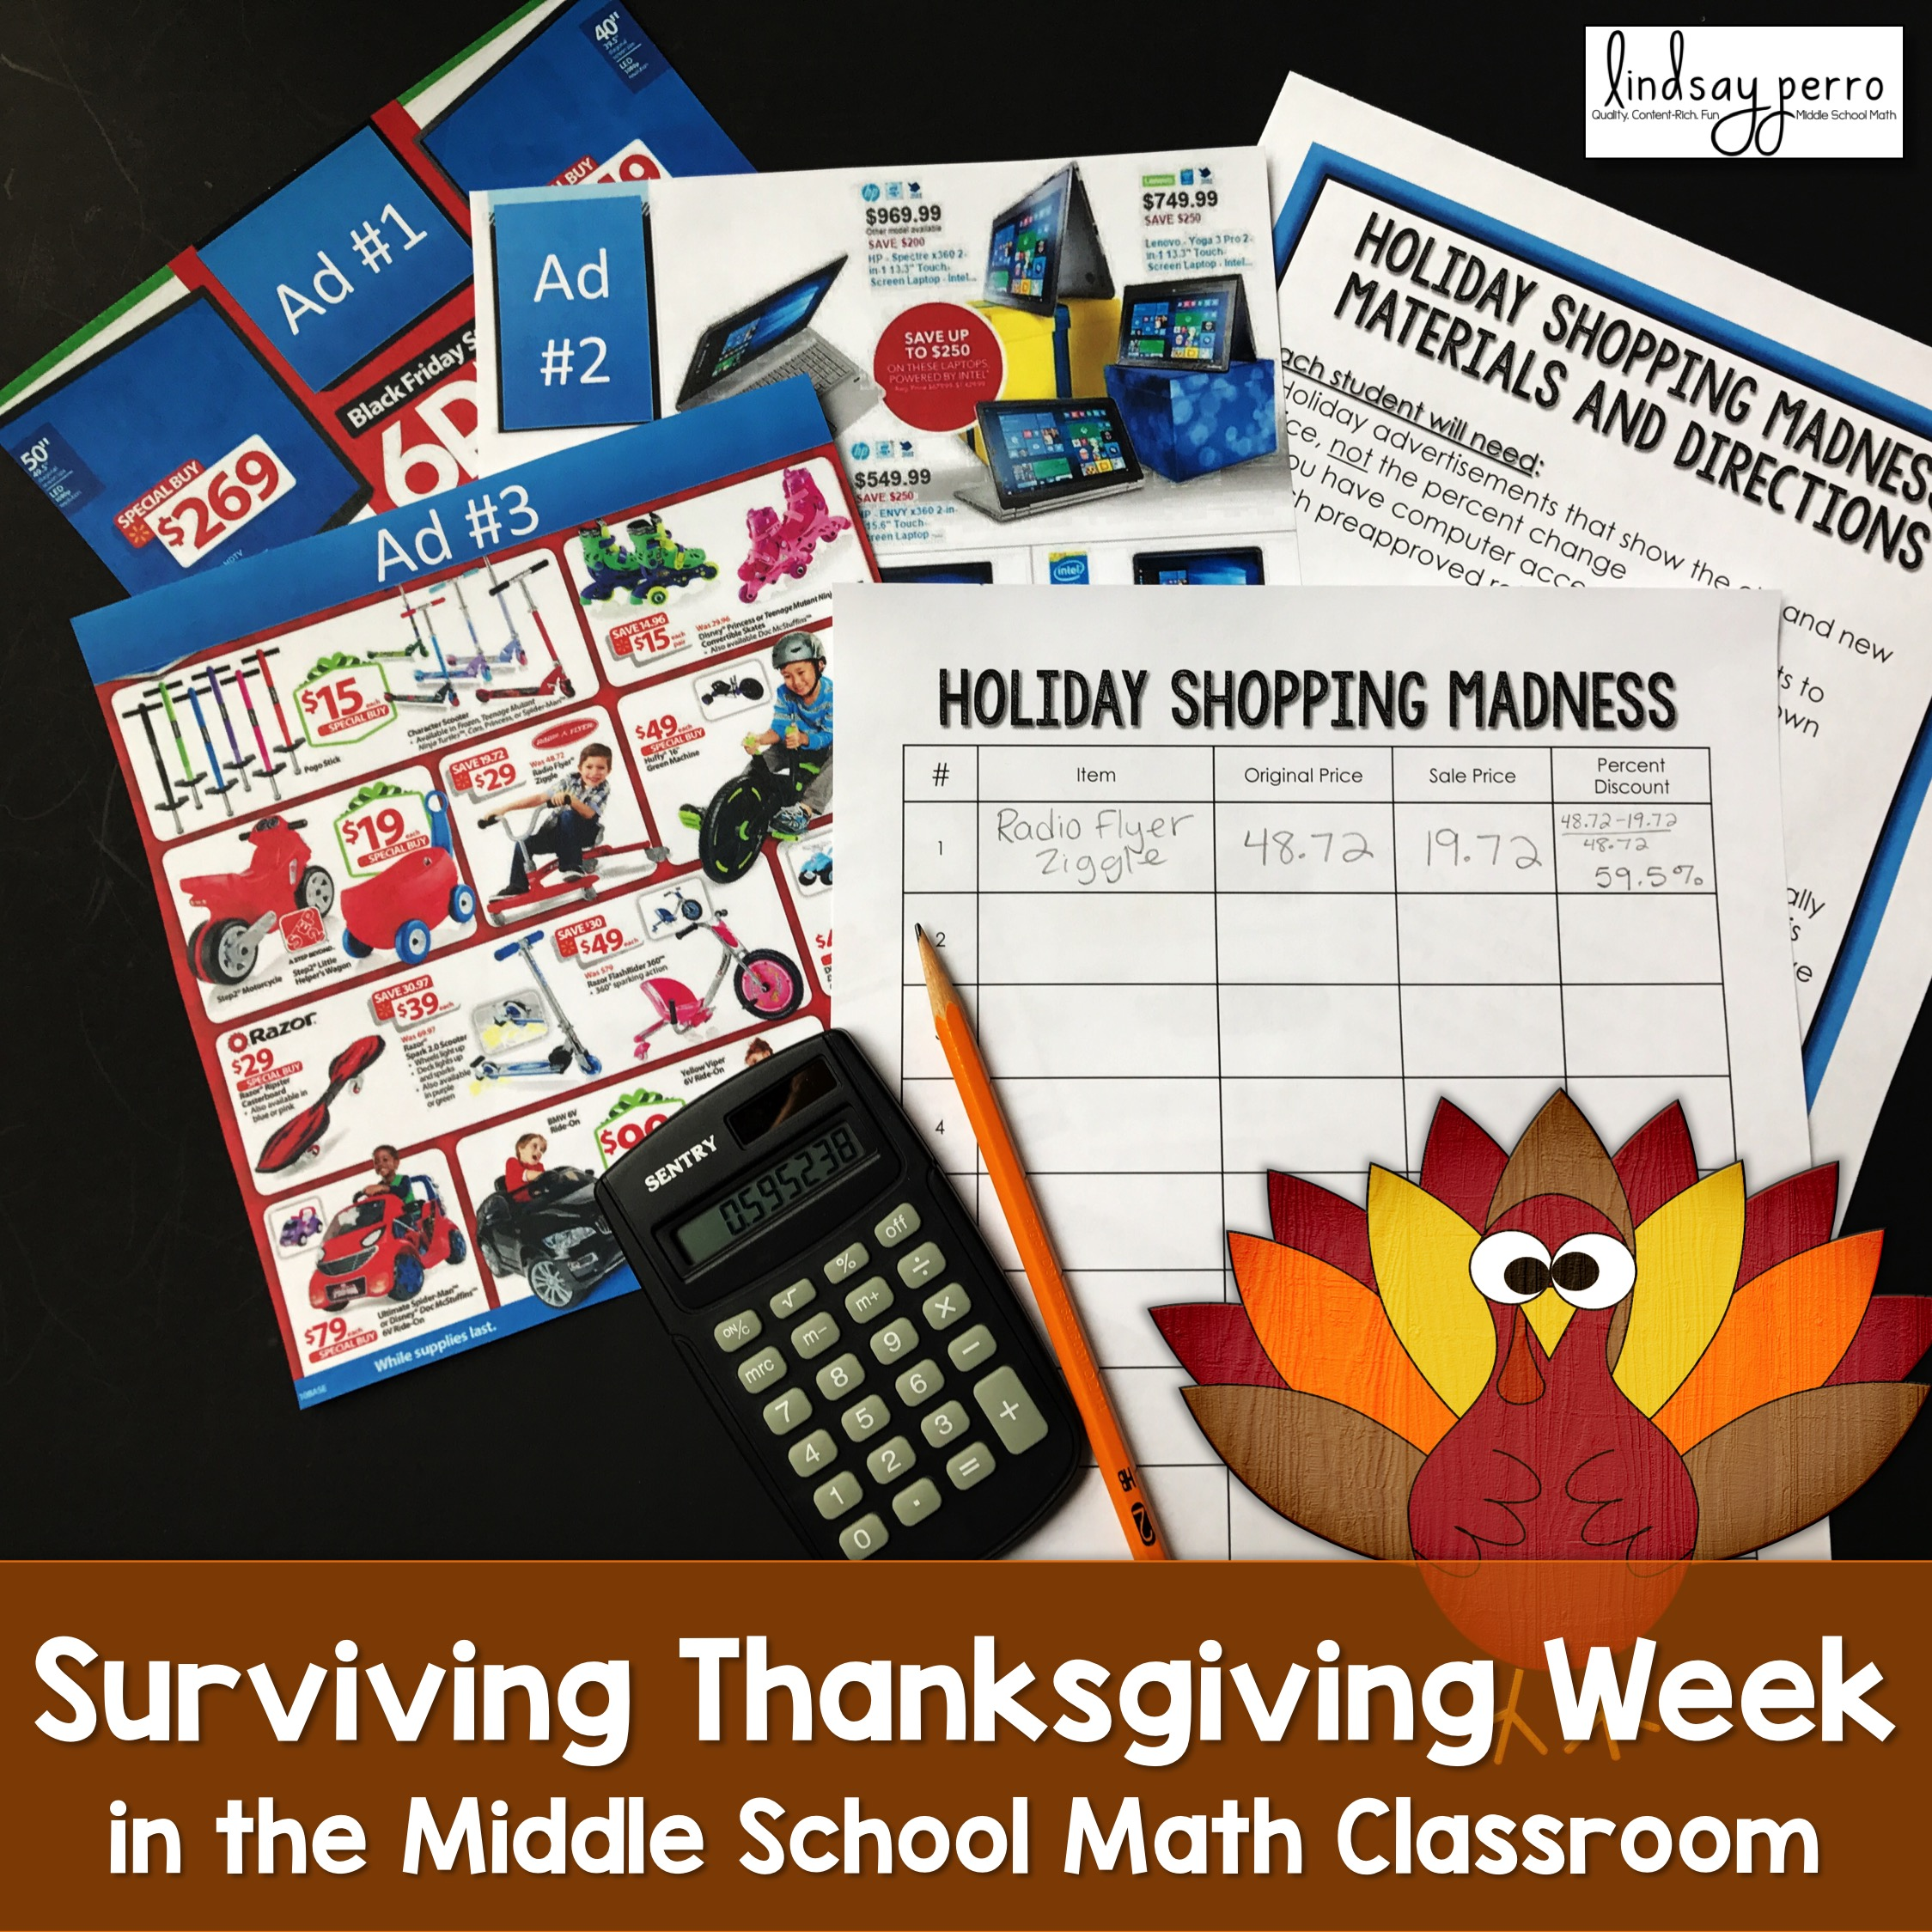 Surviving Thanksgiving Week in the Middle School Math Classroom